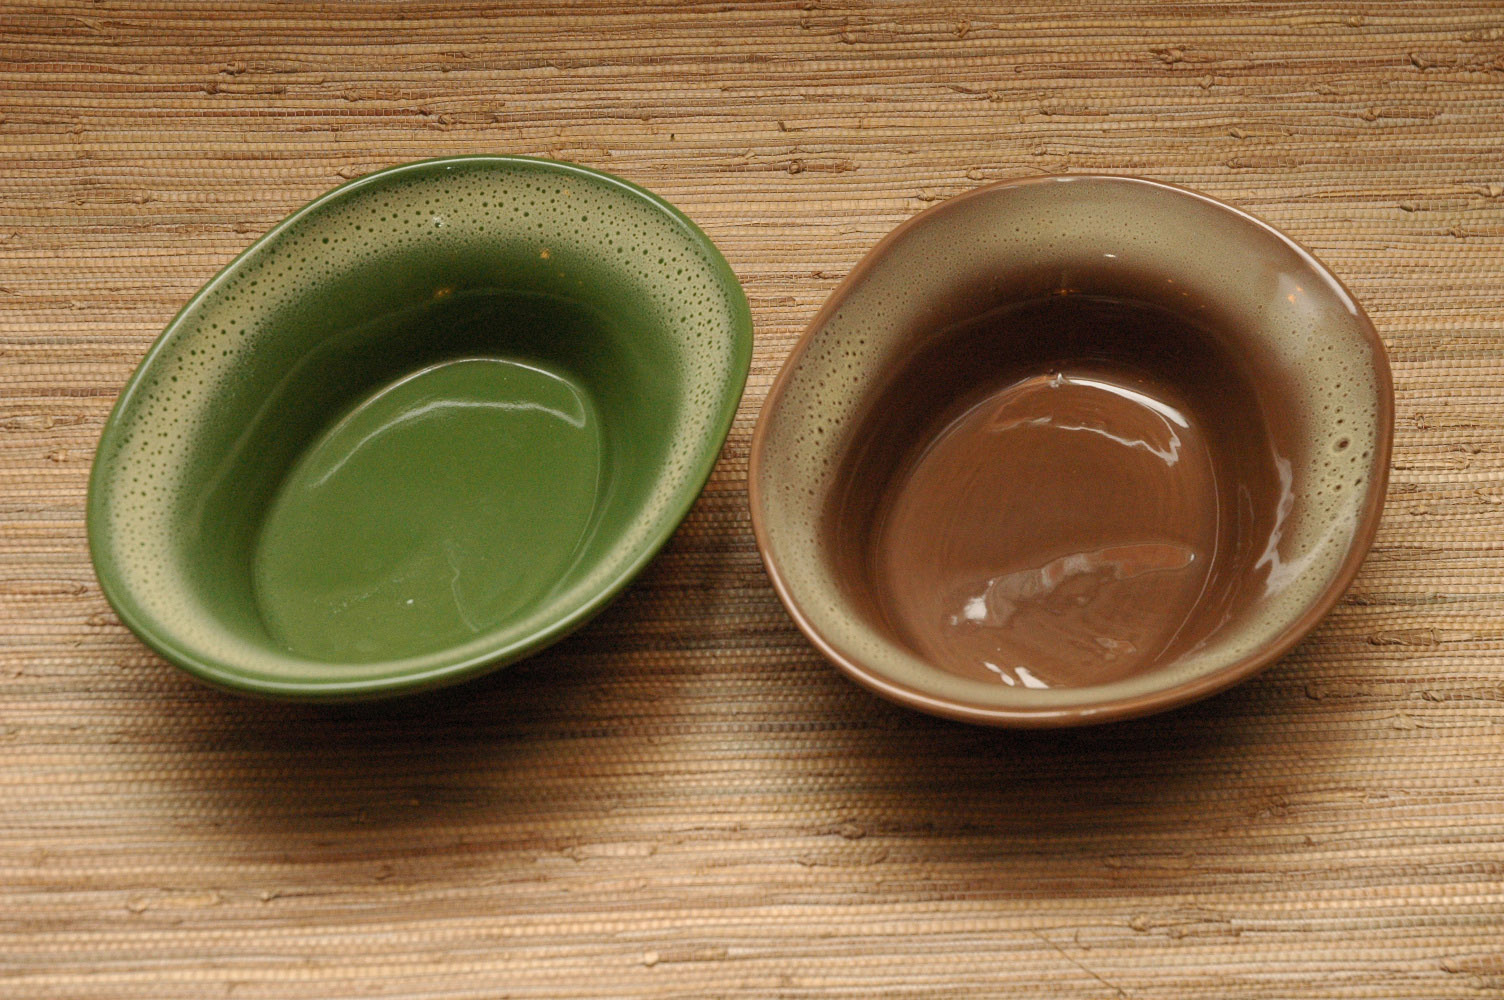 Oval bowls in frosty pine and frosty fudge